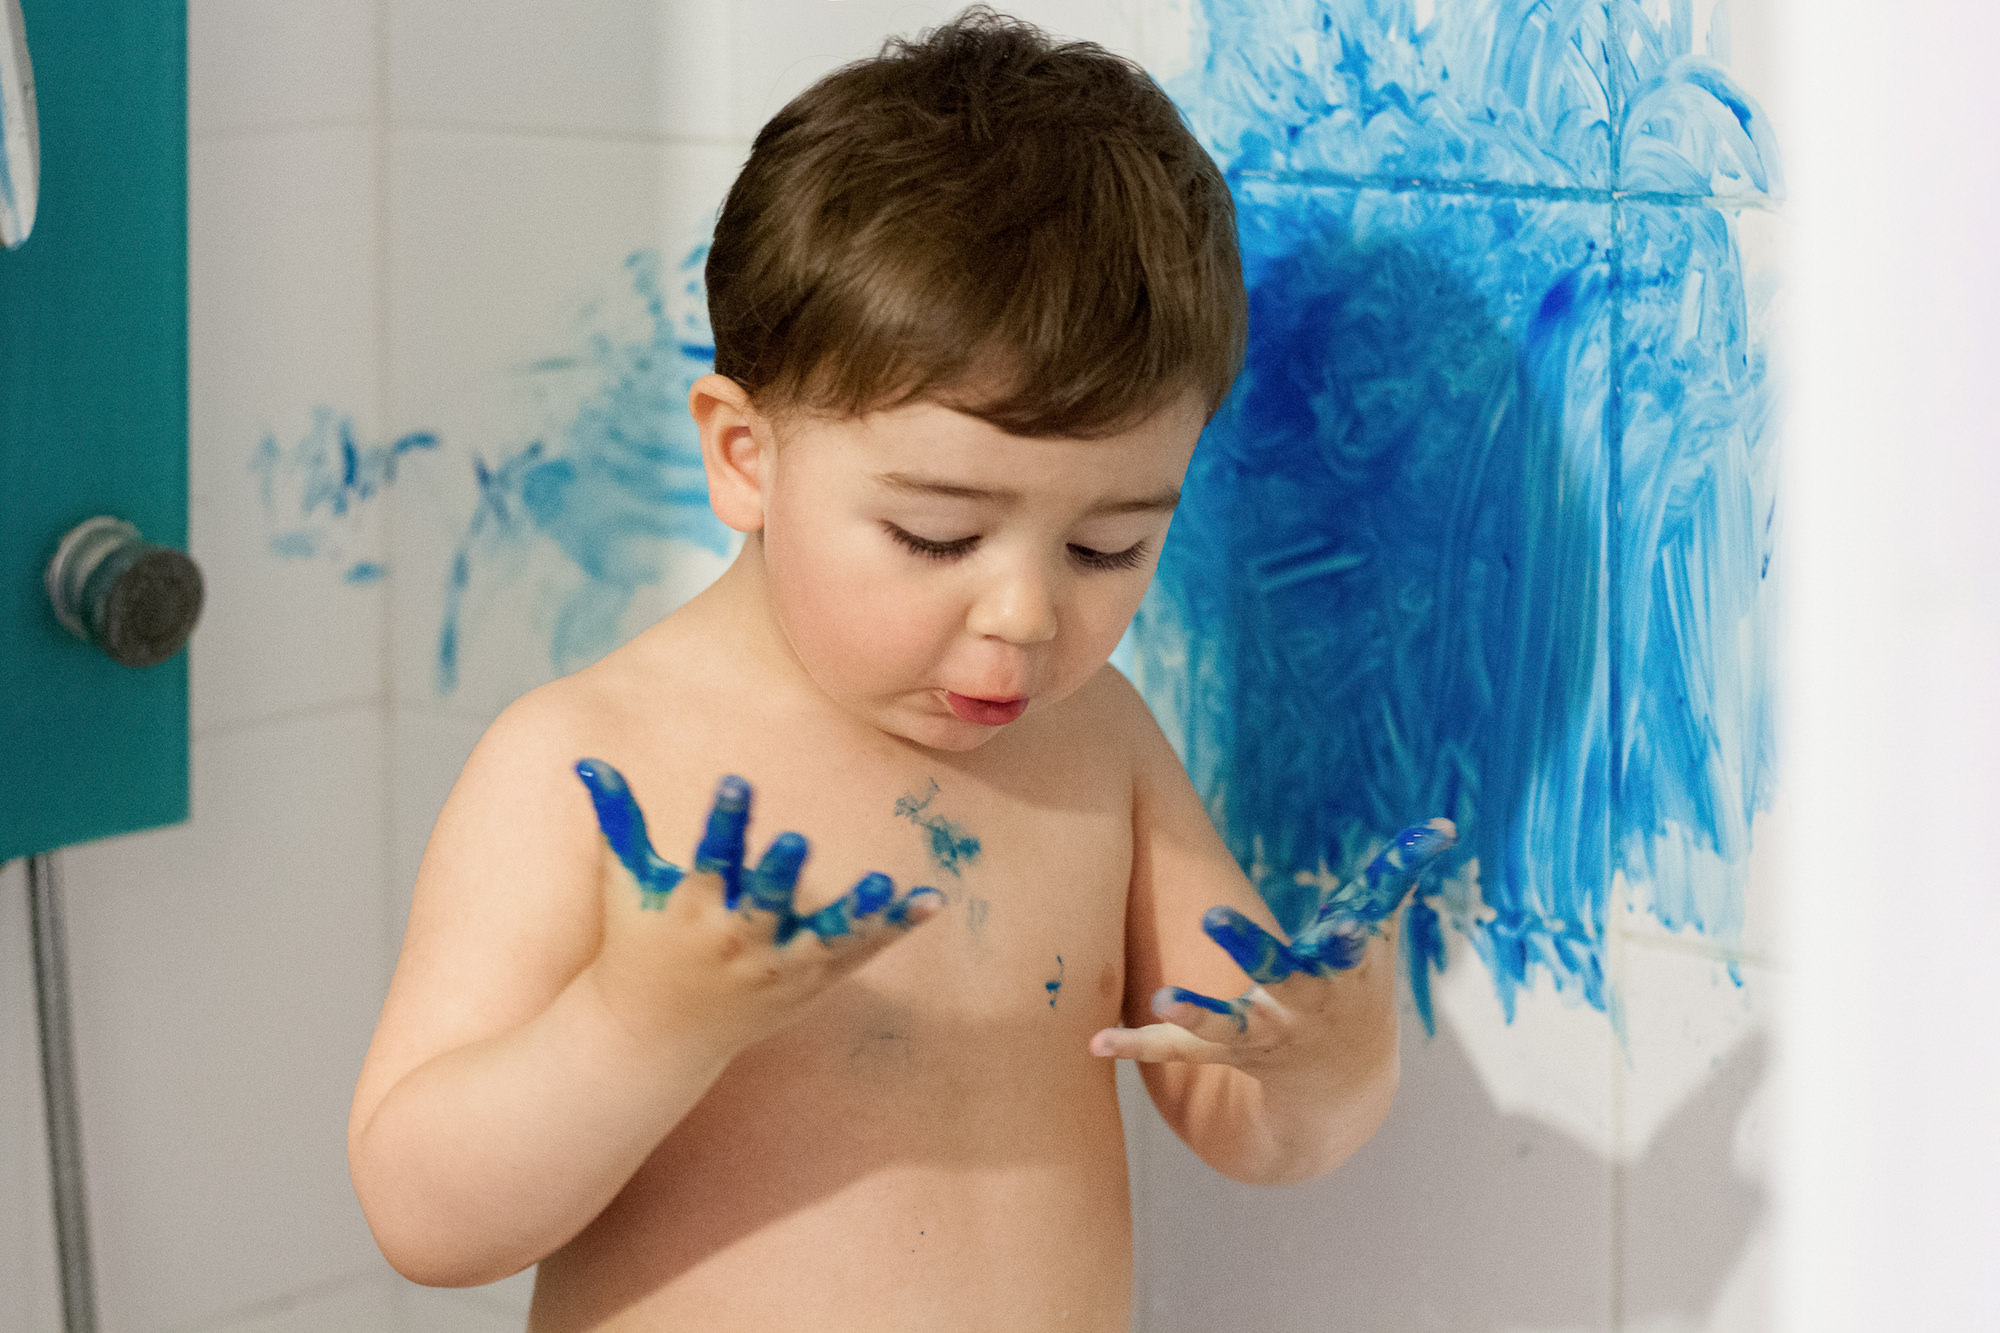 Little boy makes a mess with blue paint. Make sure you're covered in case your toddler gets up to mischief with personal liability included with your travel insurance cover.